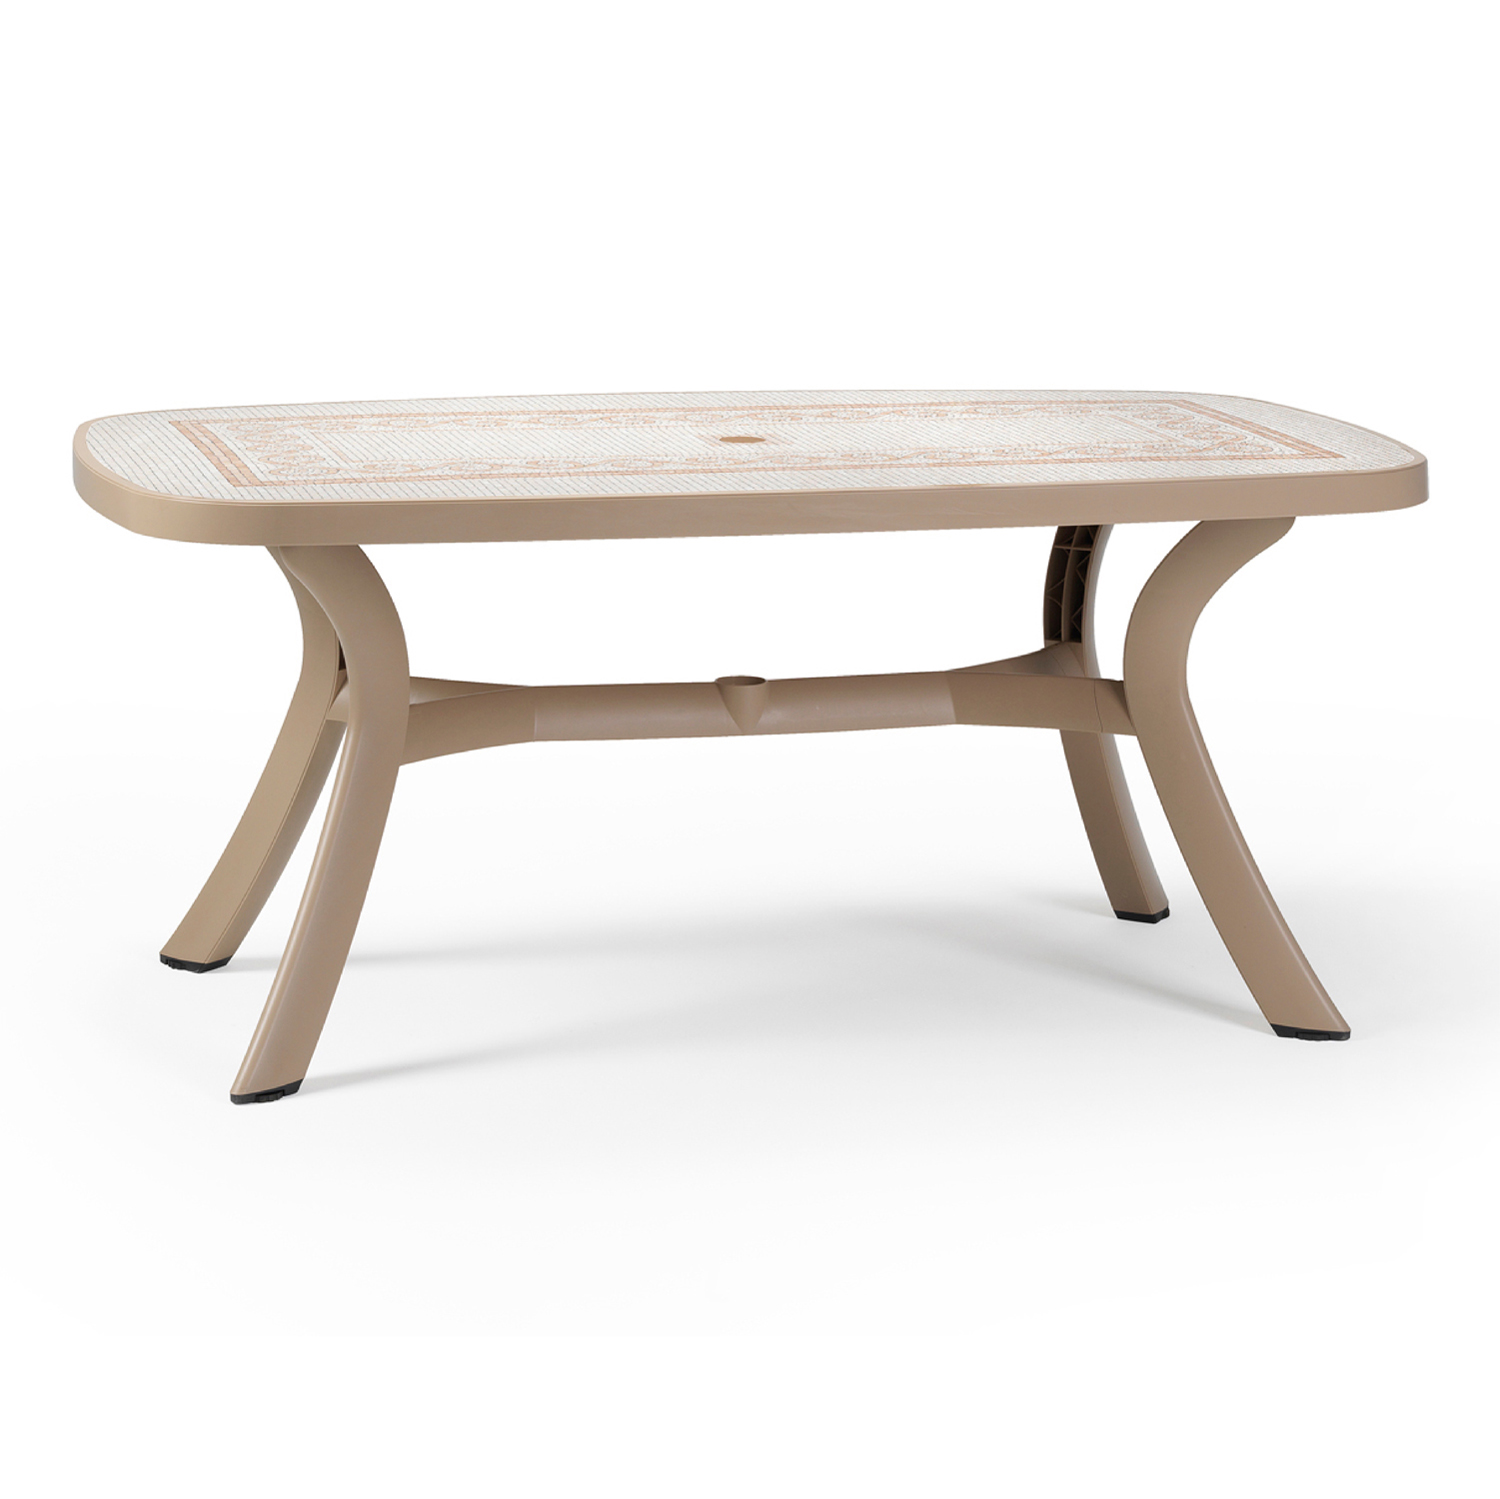 Toscana 165 table in Havanna brown